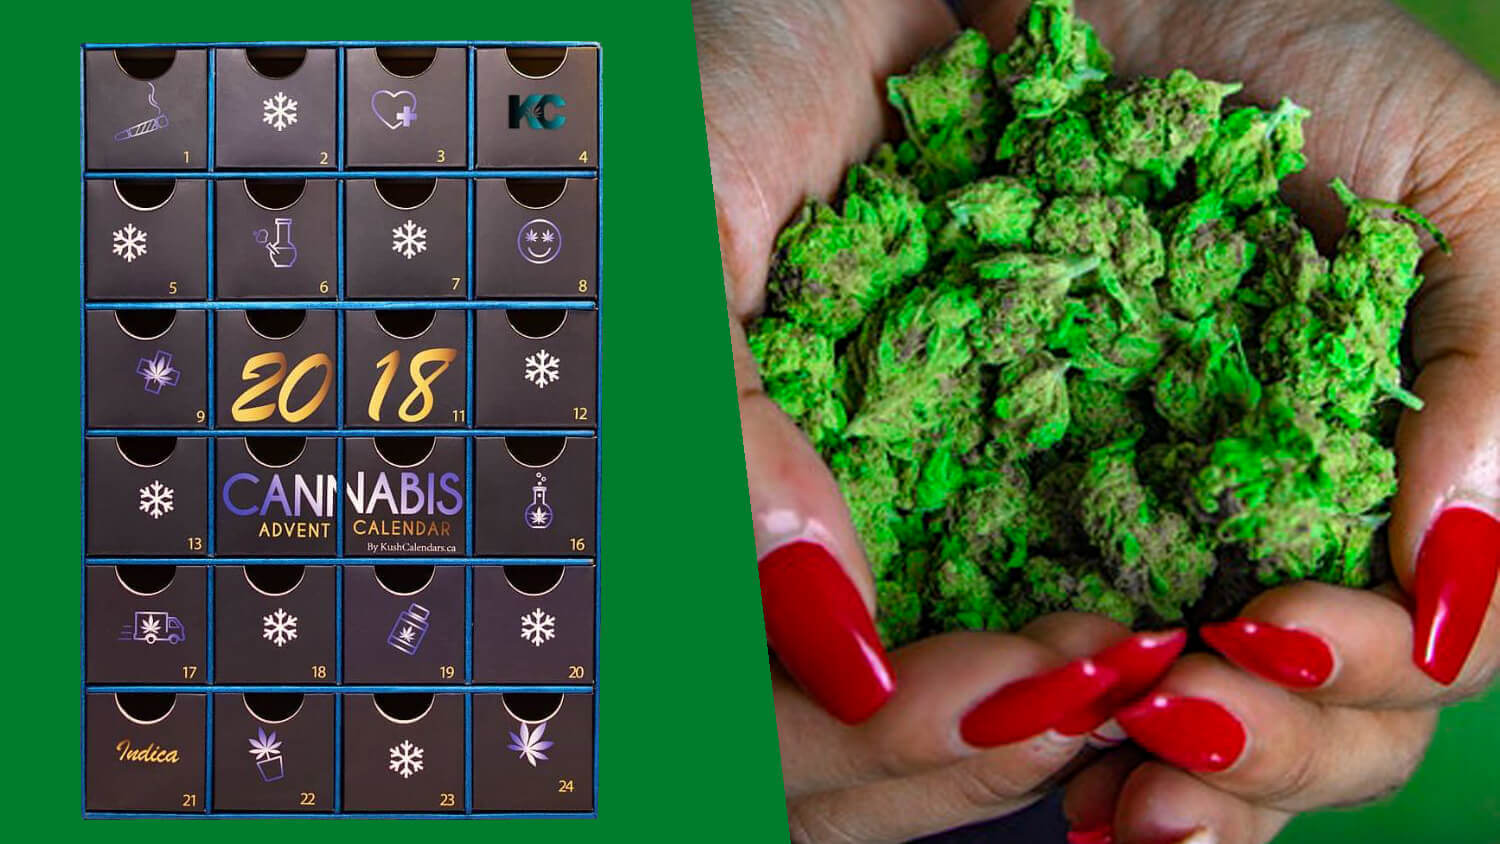 These Kush Christmas Advent Calendars Are Literally Just Canadian Cannabis